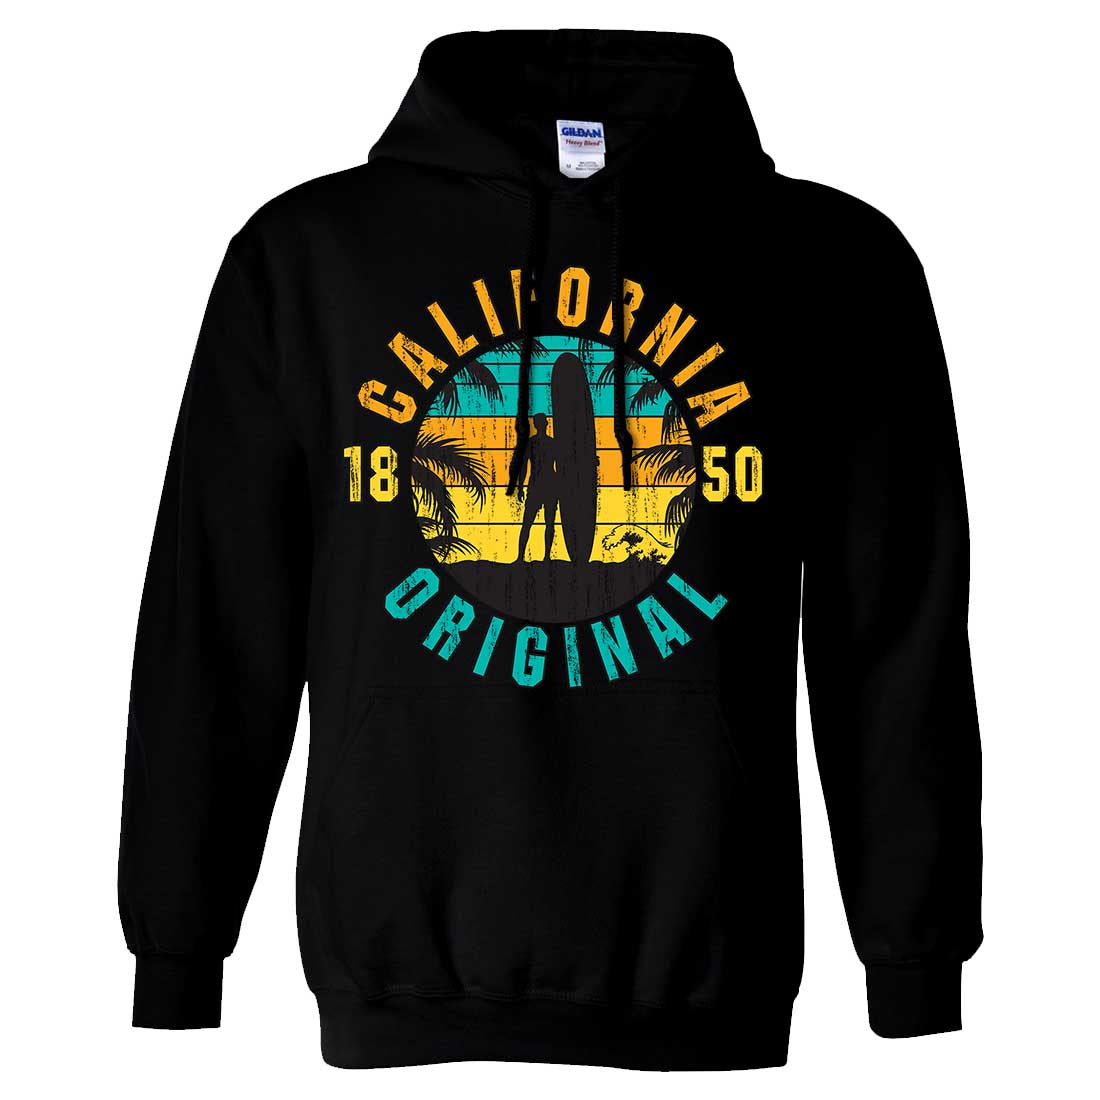 California Original Vintage Surfer Sweatshirt Hoodie